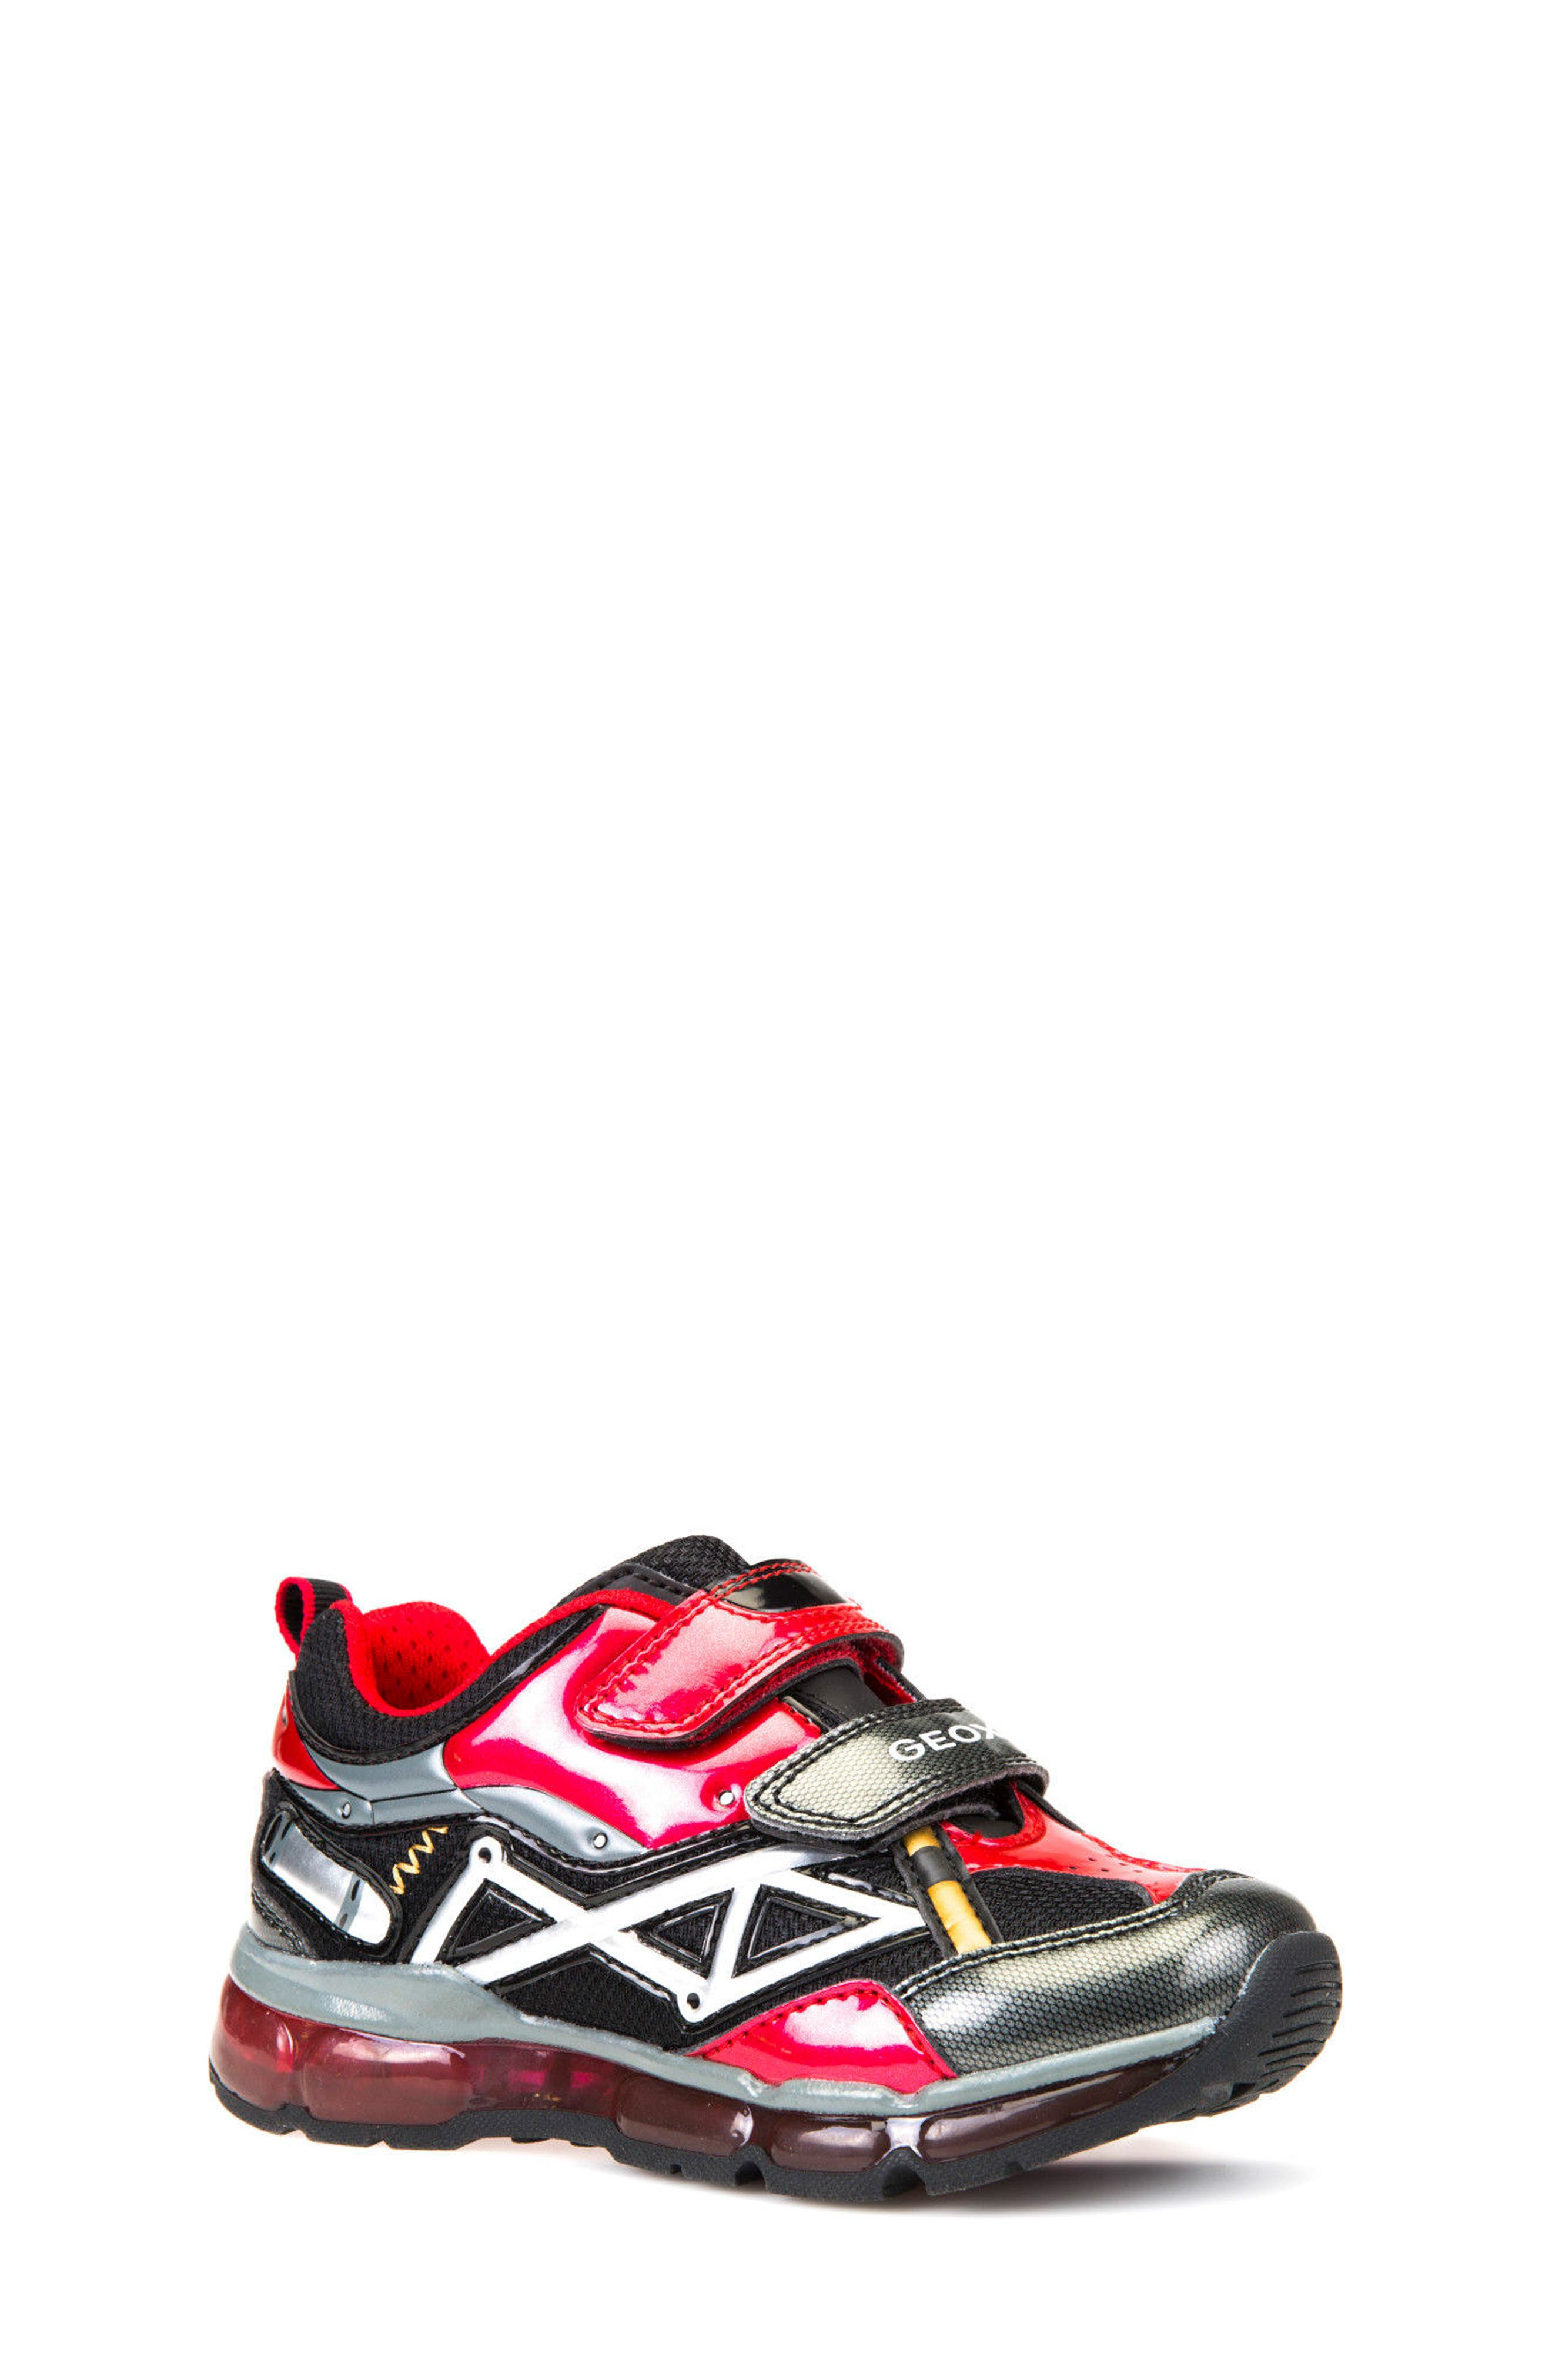 Alternate Image 1 Selected - Geox Android Light-Up Sneaker (Toddler, Little Kid & Big Kid)